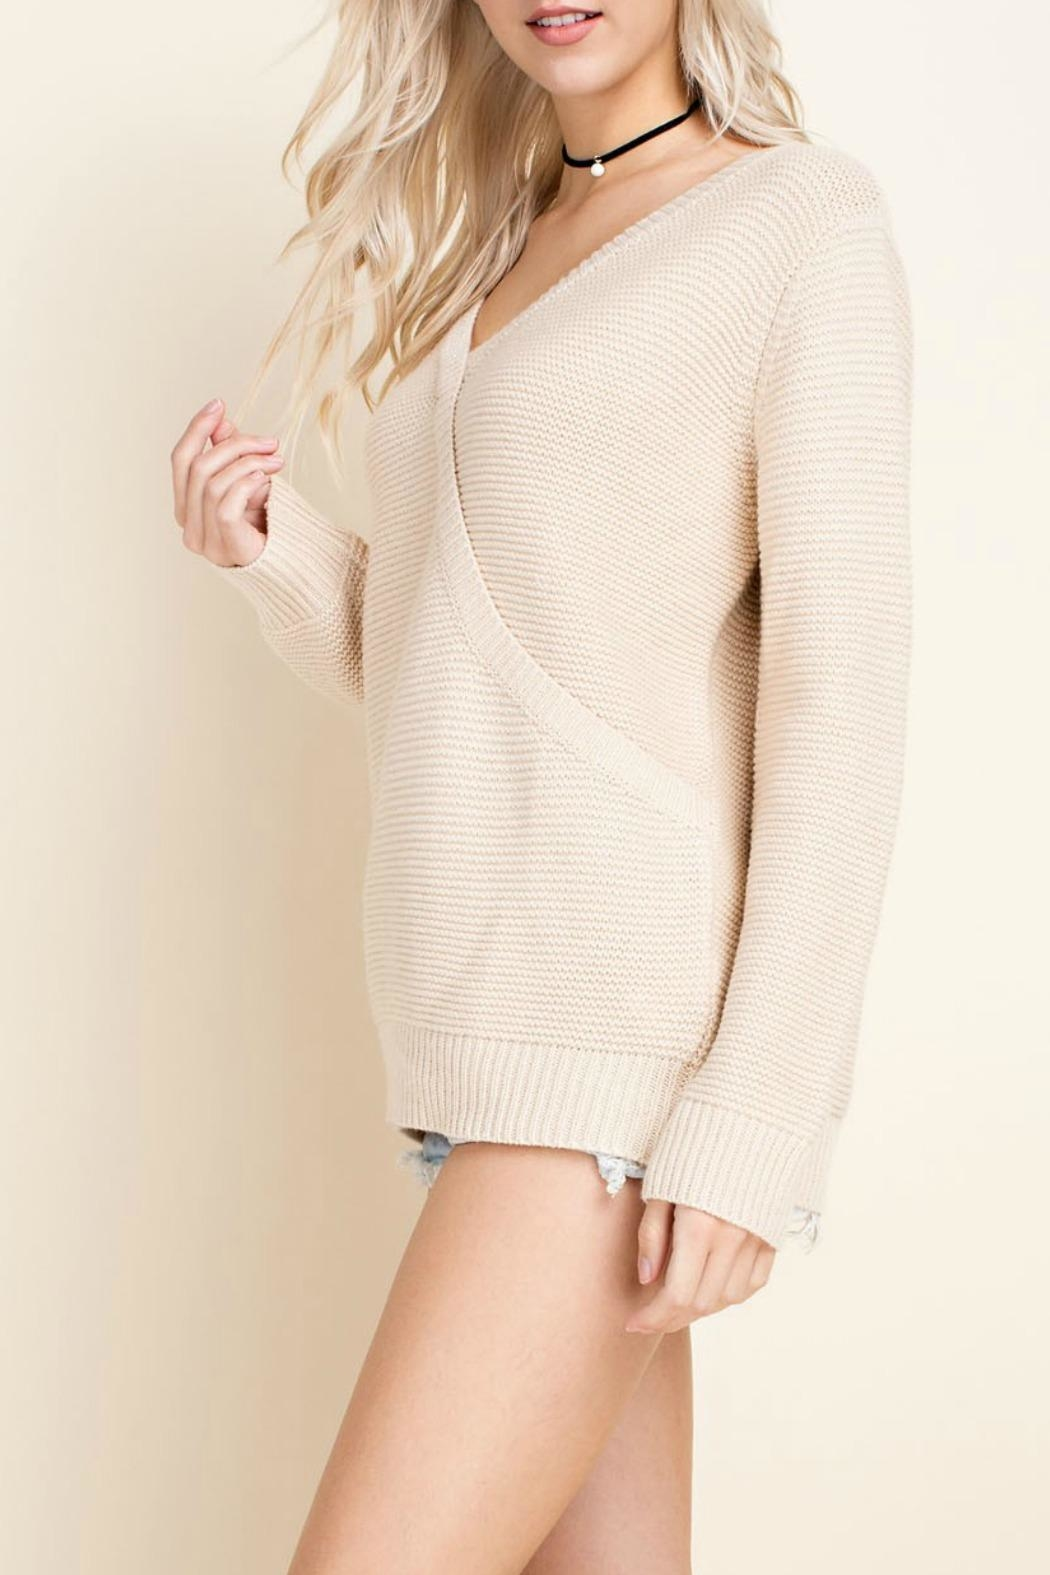 Blushing Heart Cream V-Neck Sweater - Side Cropped Image